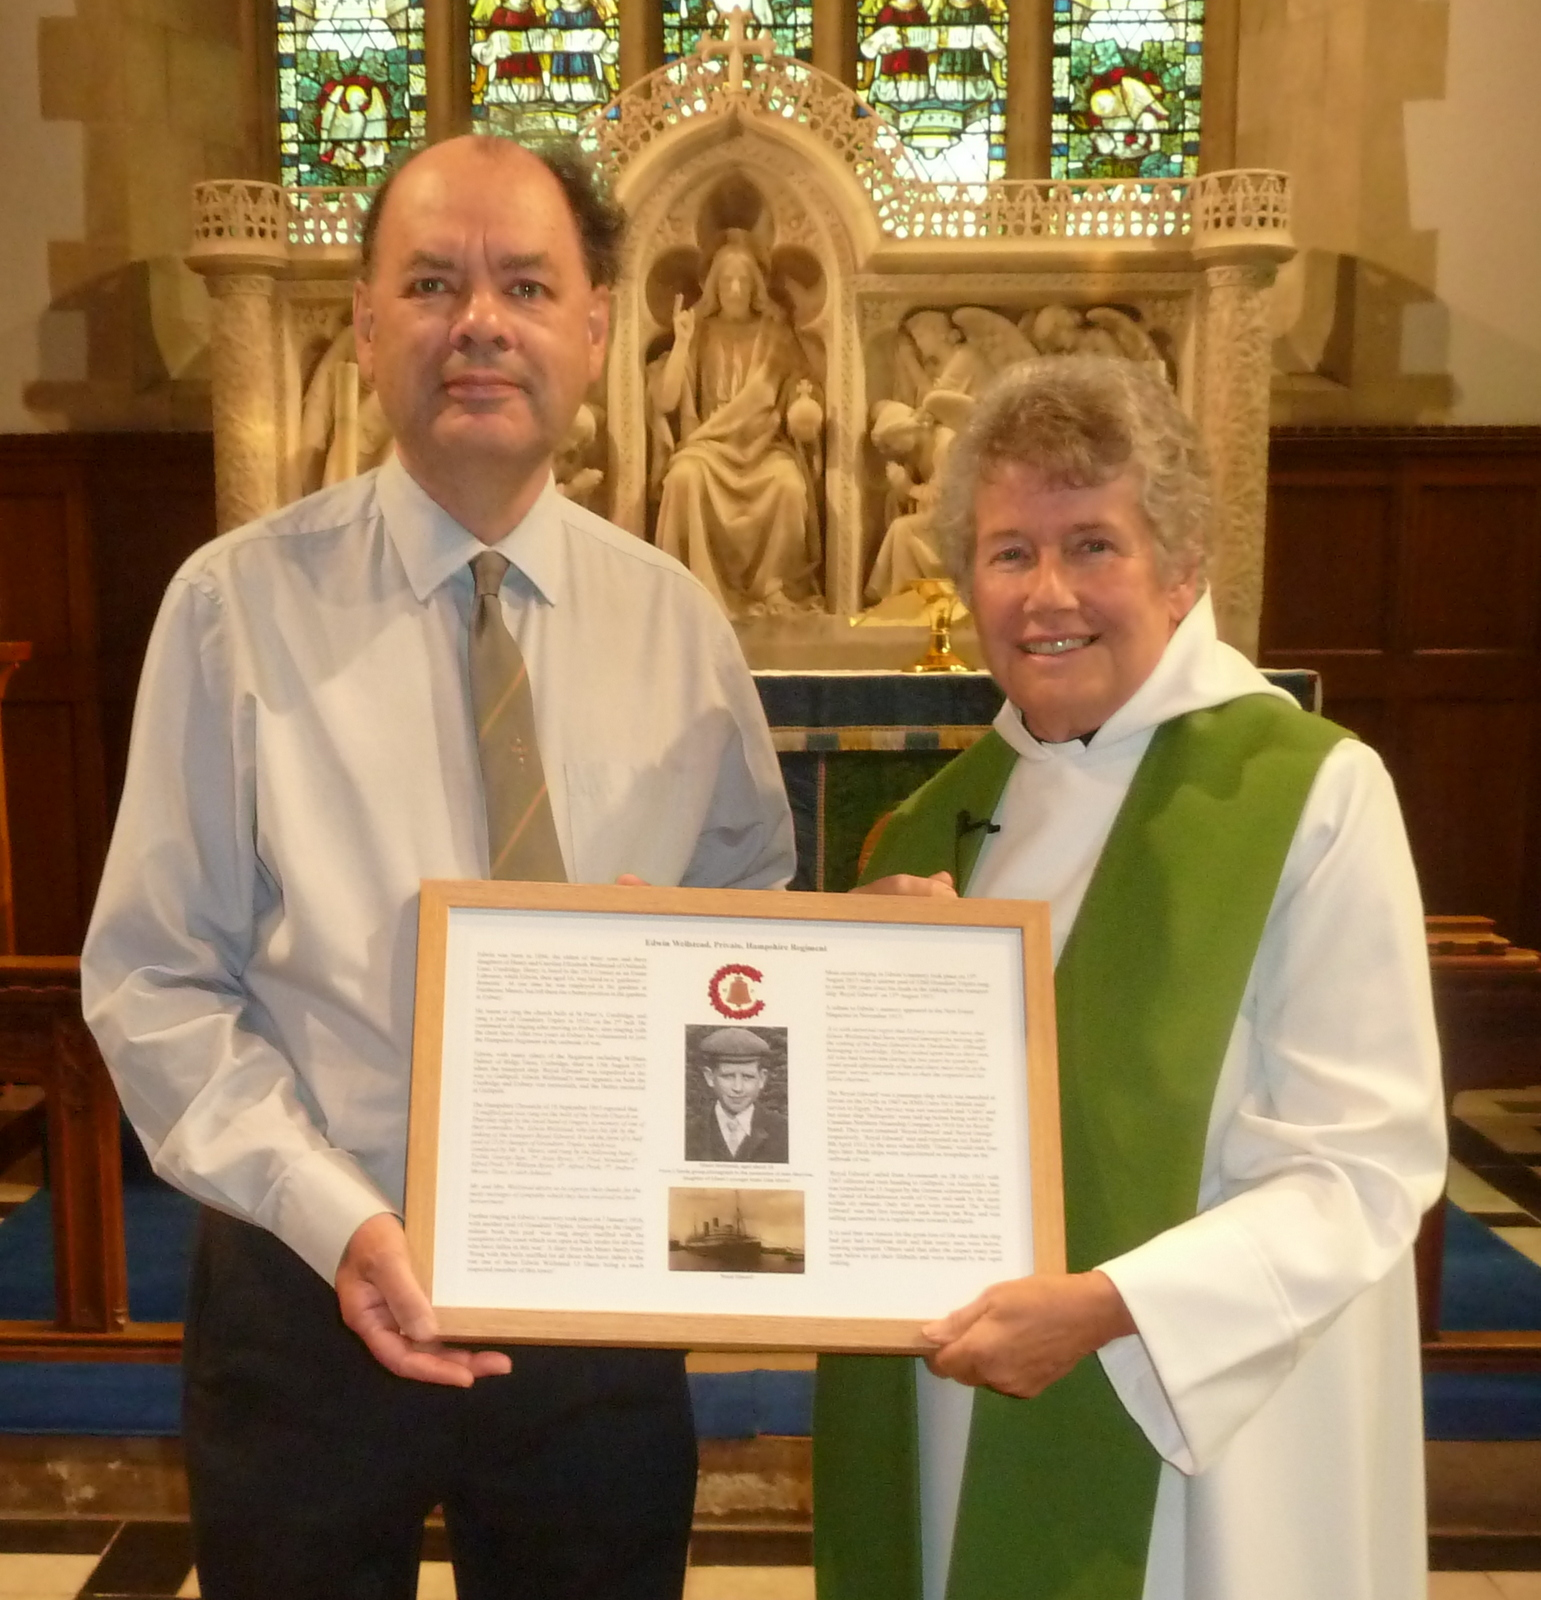 Curdridge - Edwin Wellstead memorial dedication - Robin Milford and Rev Jane Richards